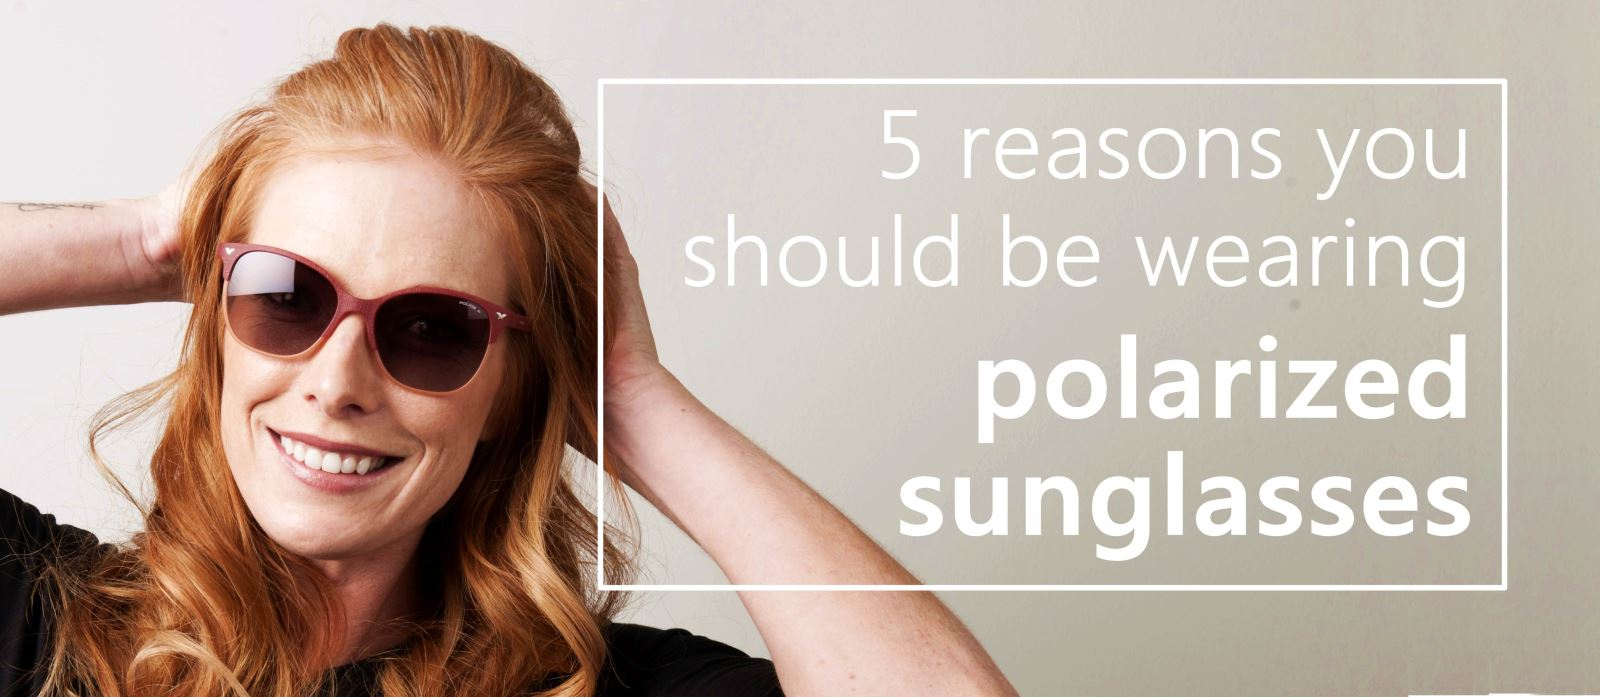 TO READ: 5 reasons you should be wearing polarized sunglasses